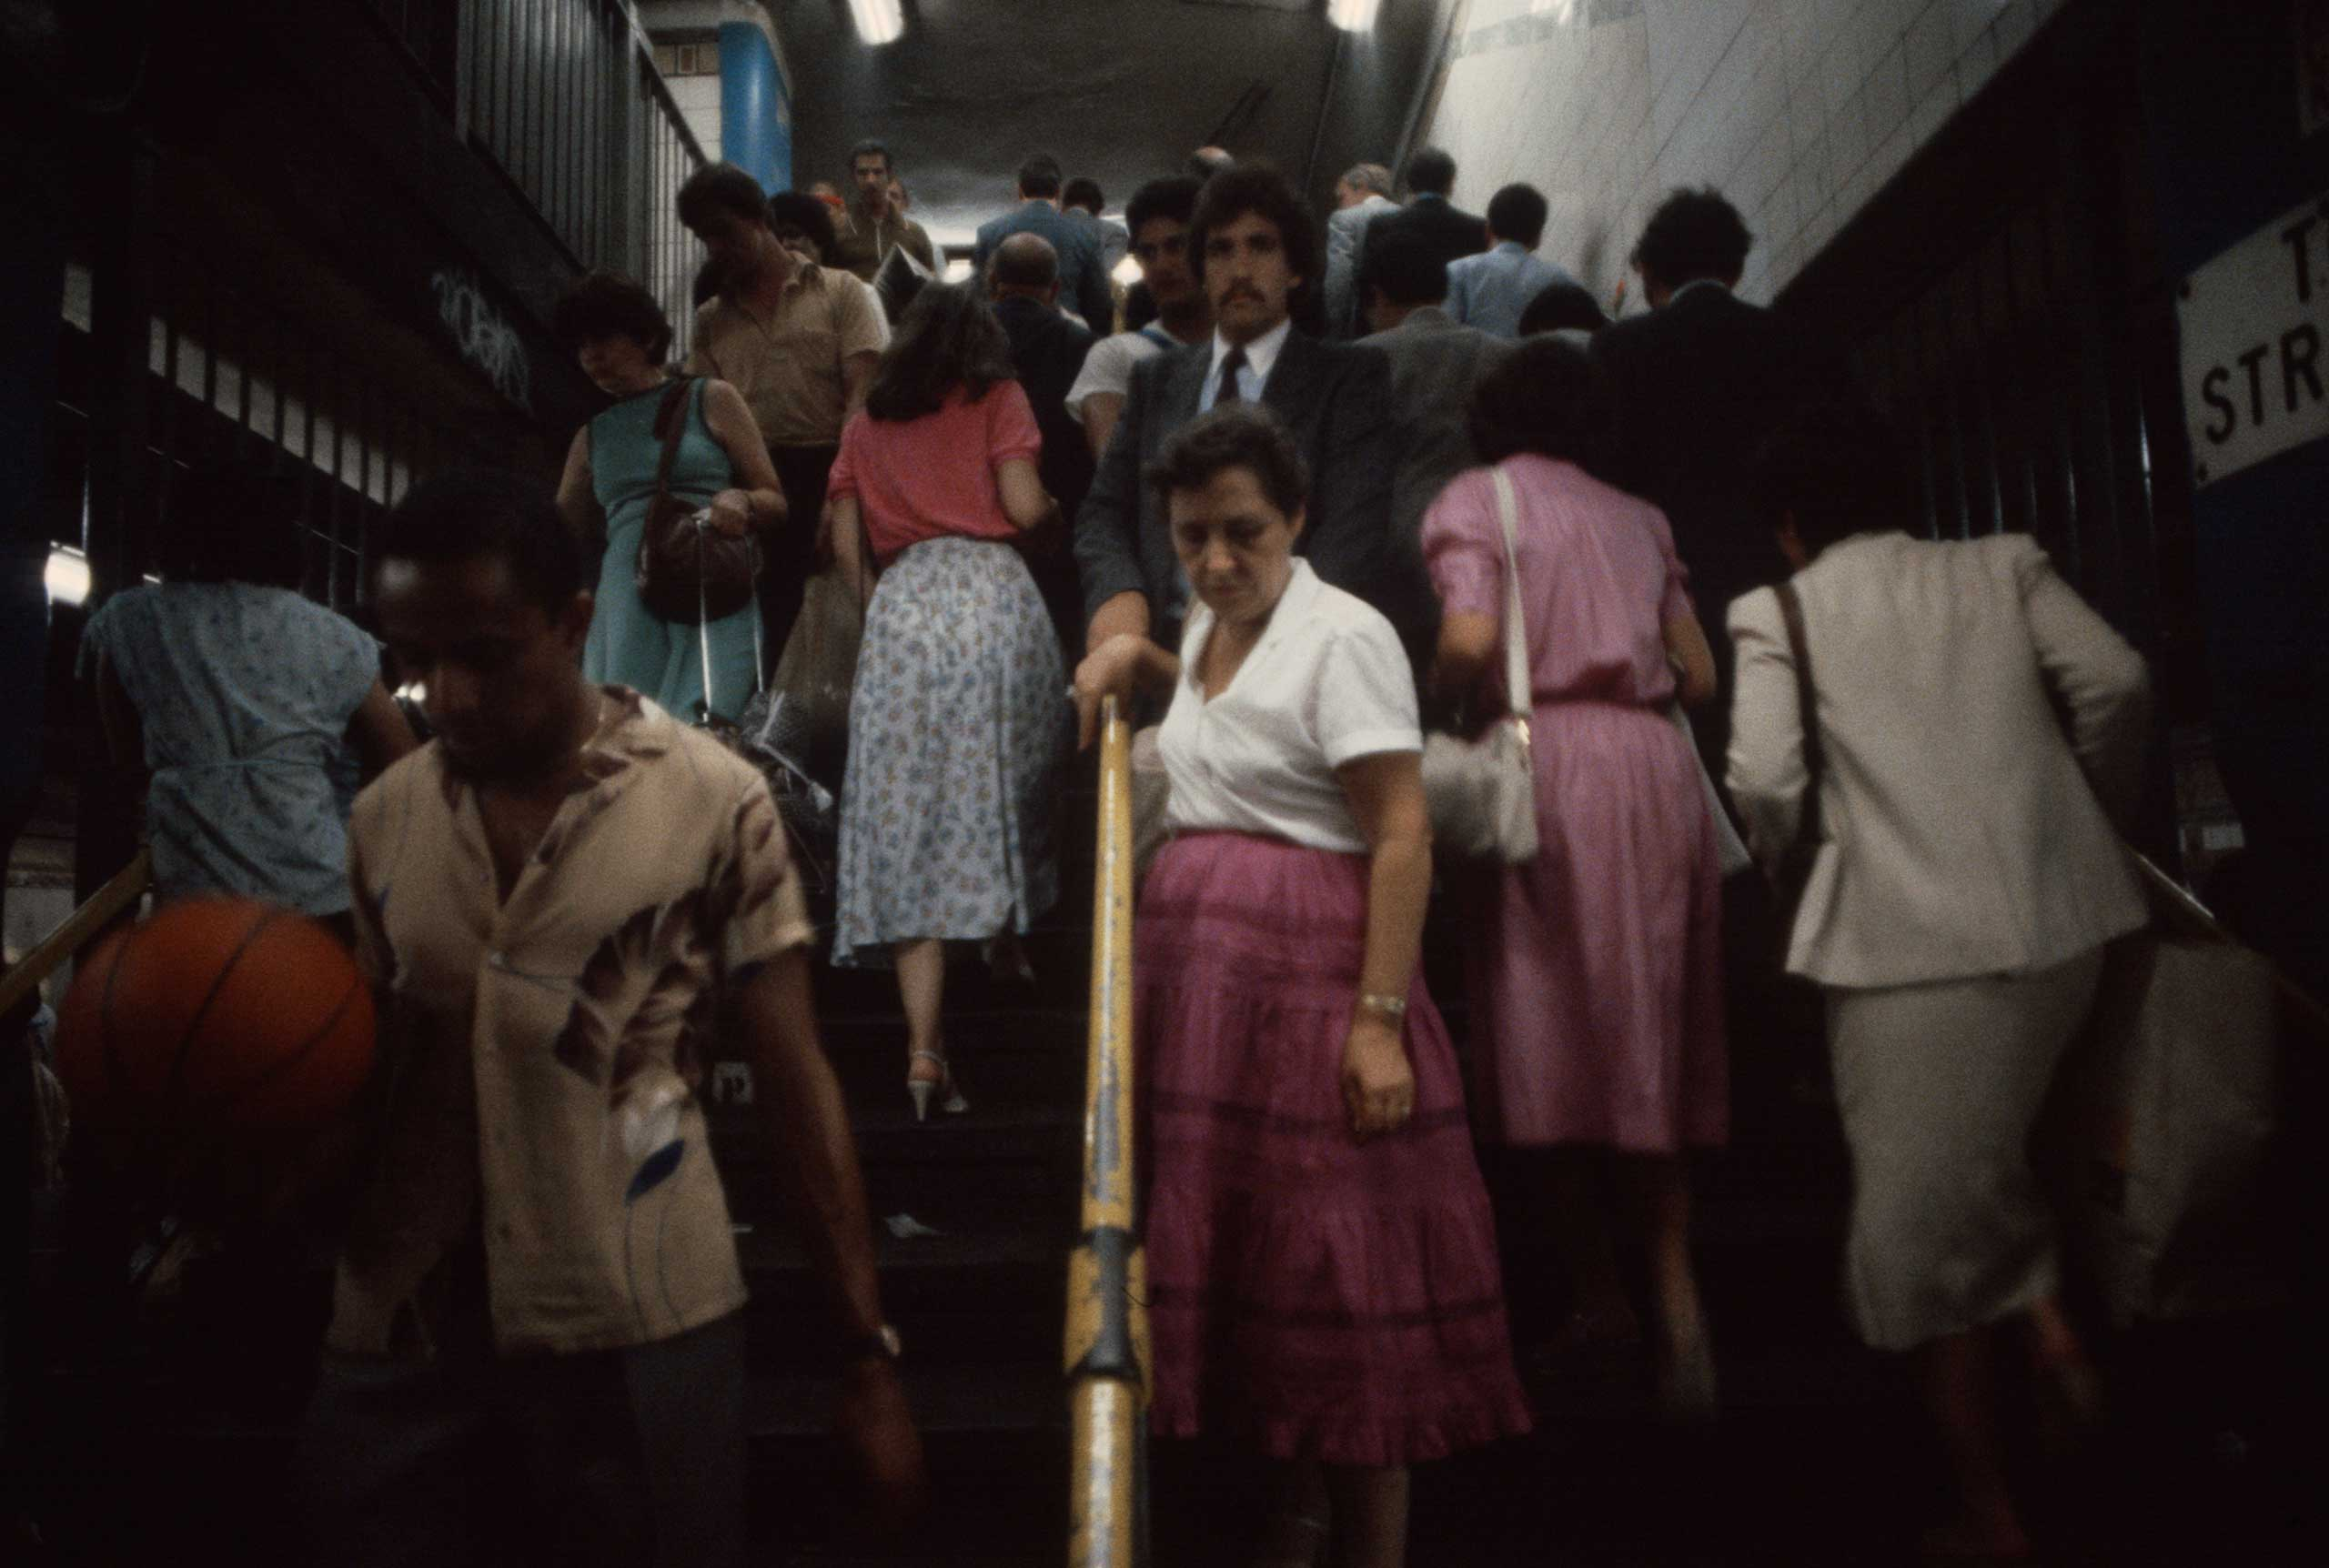 Commuters ascend and descend stairwells during rush hour, 1981.